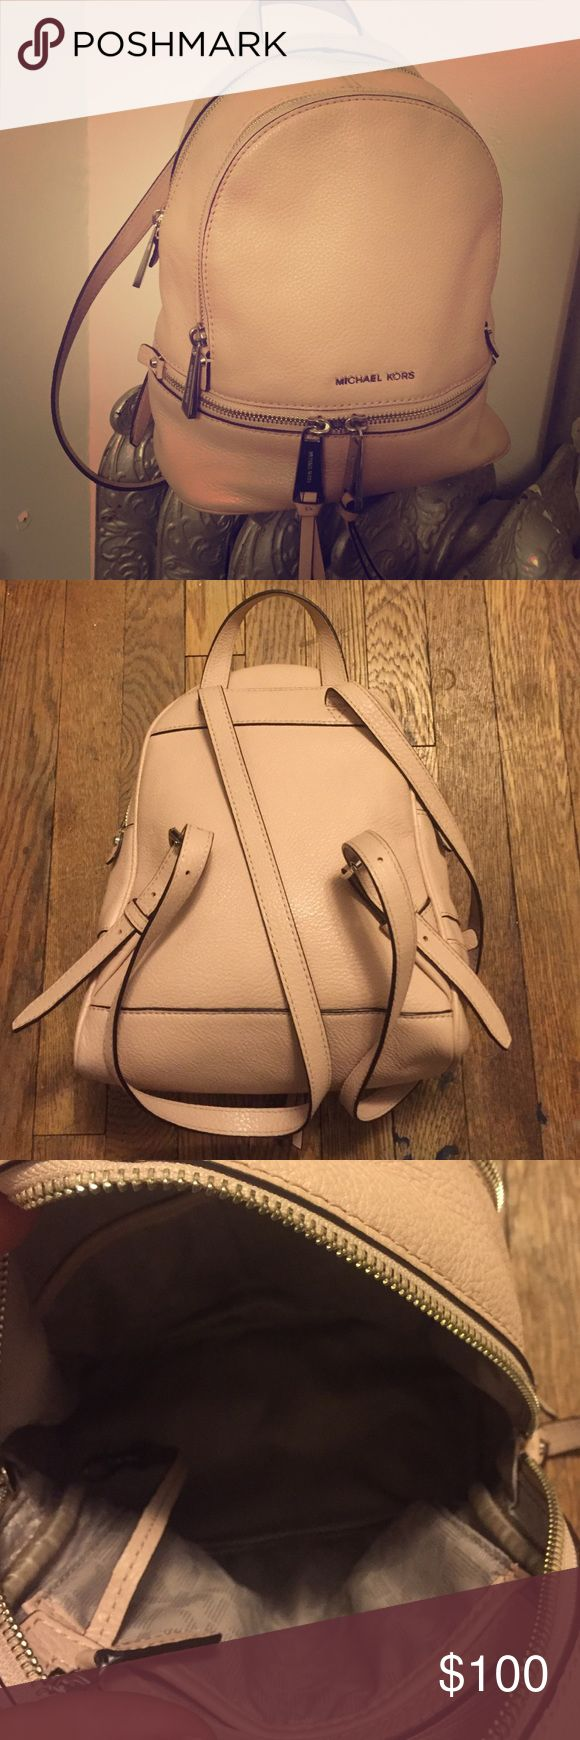 Michael Kors pink backpack This is an authentic Micheal Kors pink backpack I bought for myself at the store so I know it's real. I don't have a receipt or bag, but I'll include the exclusive cleaning/dirt resistant spray that I bought for it as well. I love this bag, but I barely use it. No trades. Michael Kors Bags Backpacks